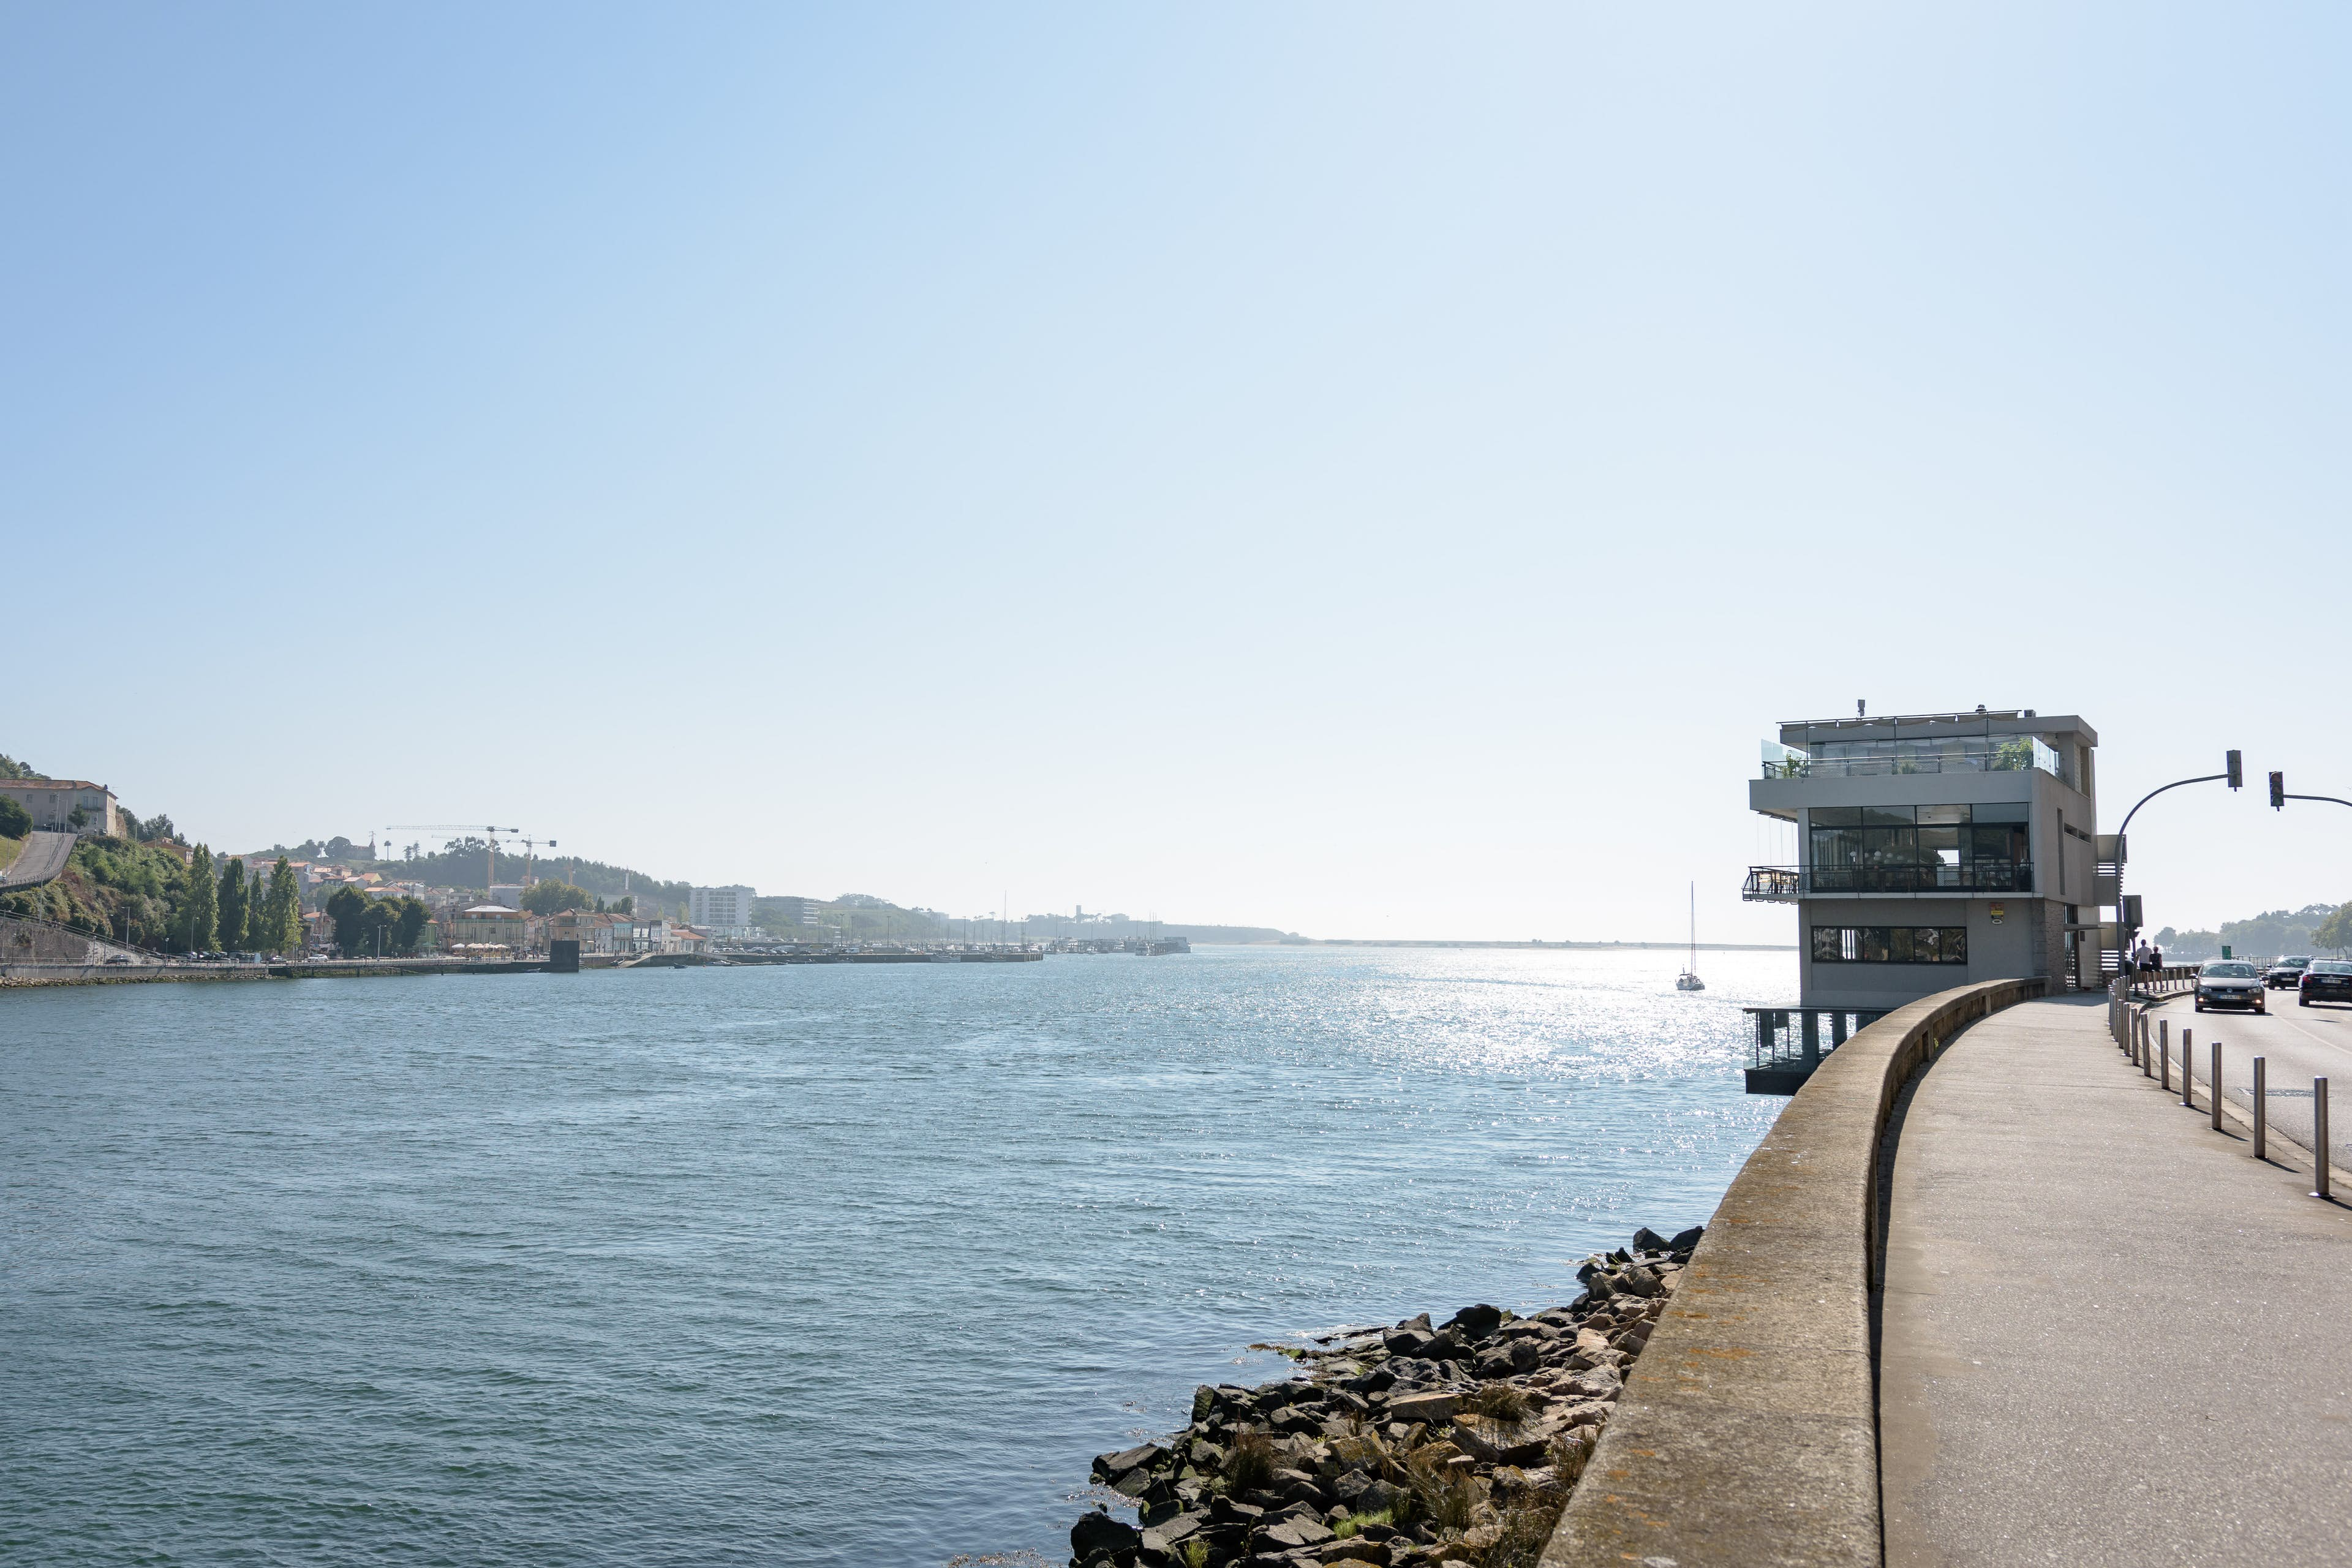 Porto by the Ocean image